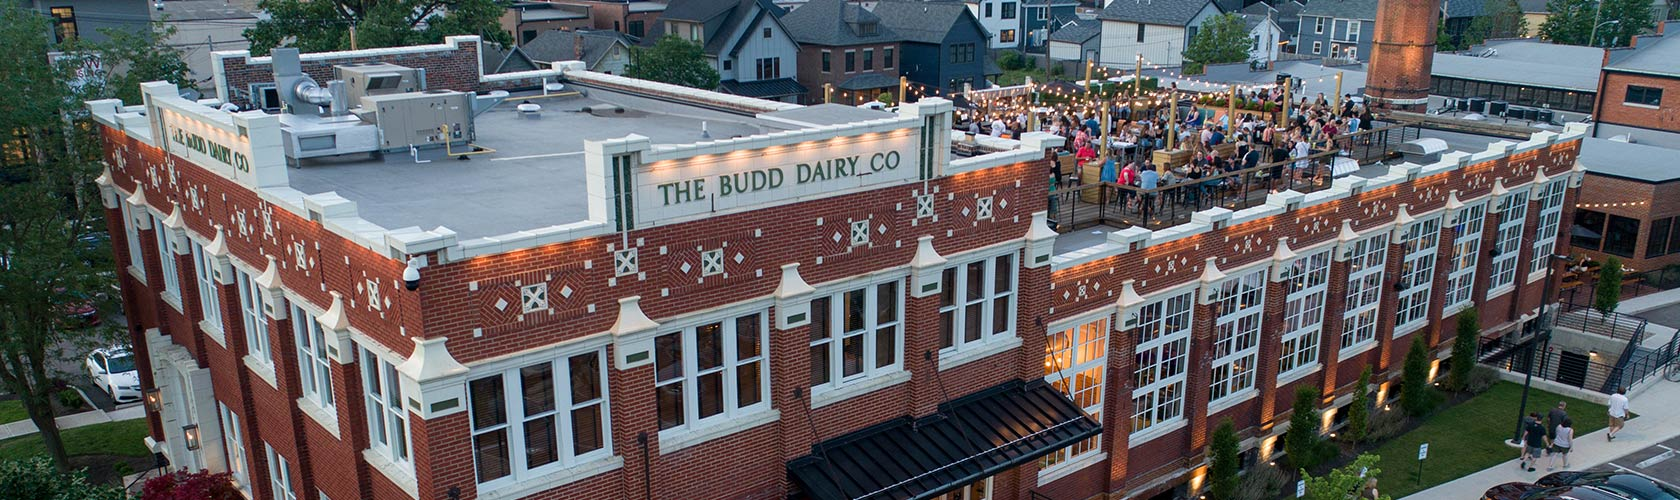 Aerial view of Budd Dairy Food Hall with crowd on roof